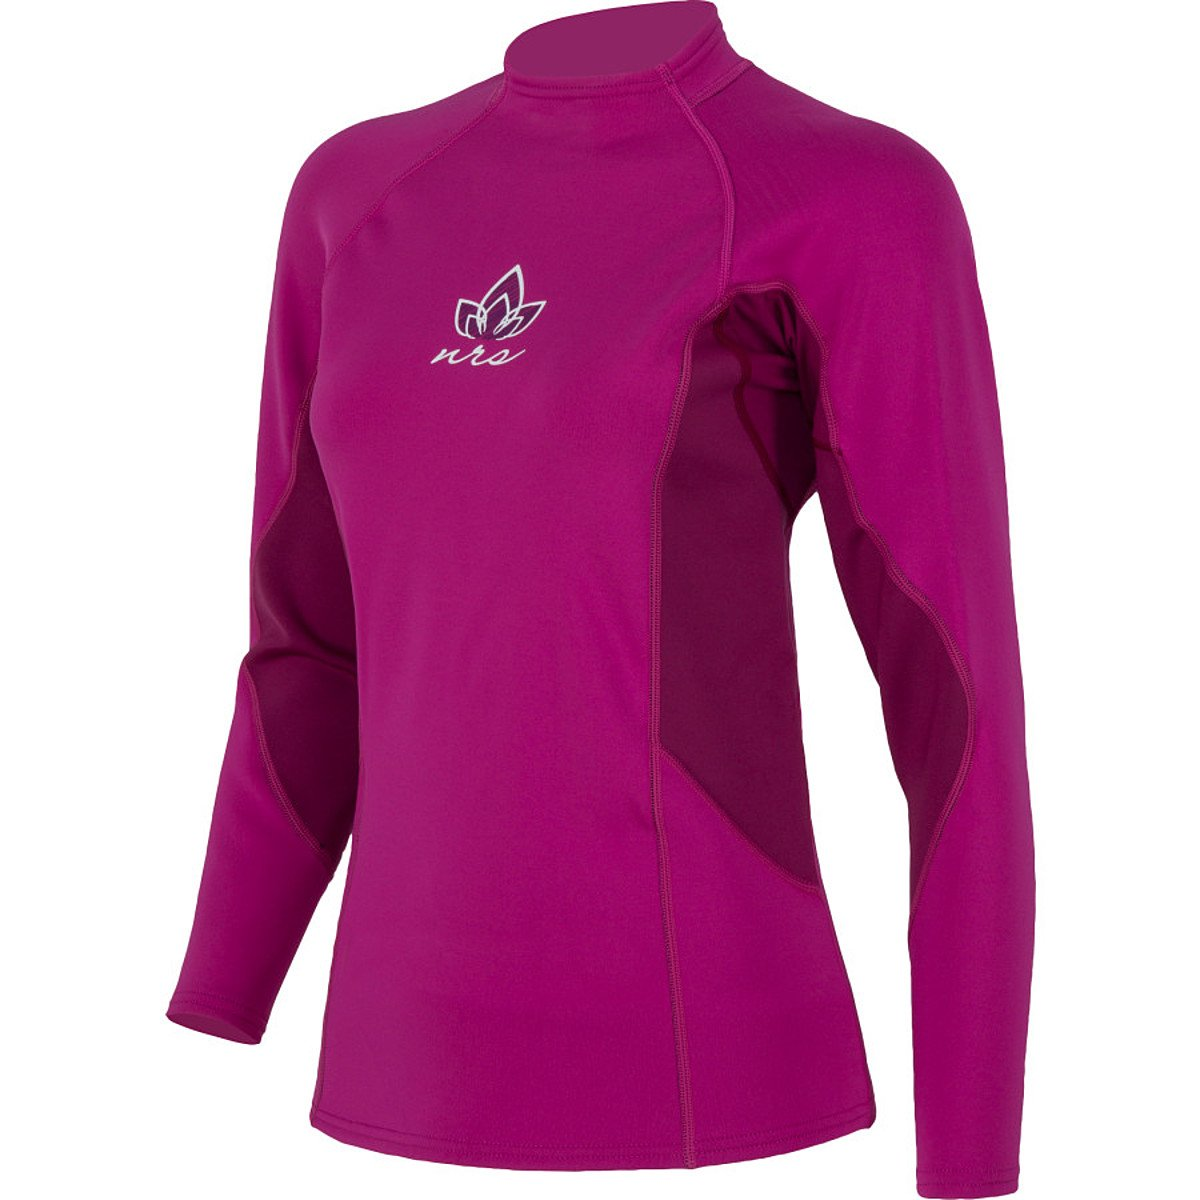 NRS HydroSkin 0.5 LS Shirt - Women's Purple Haze XS by NRS